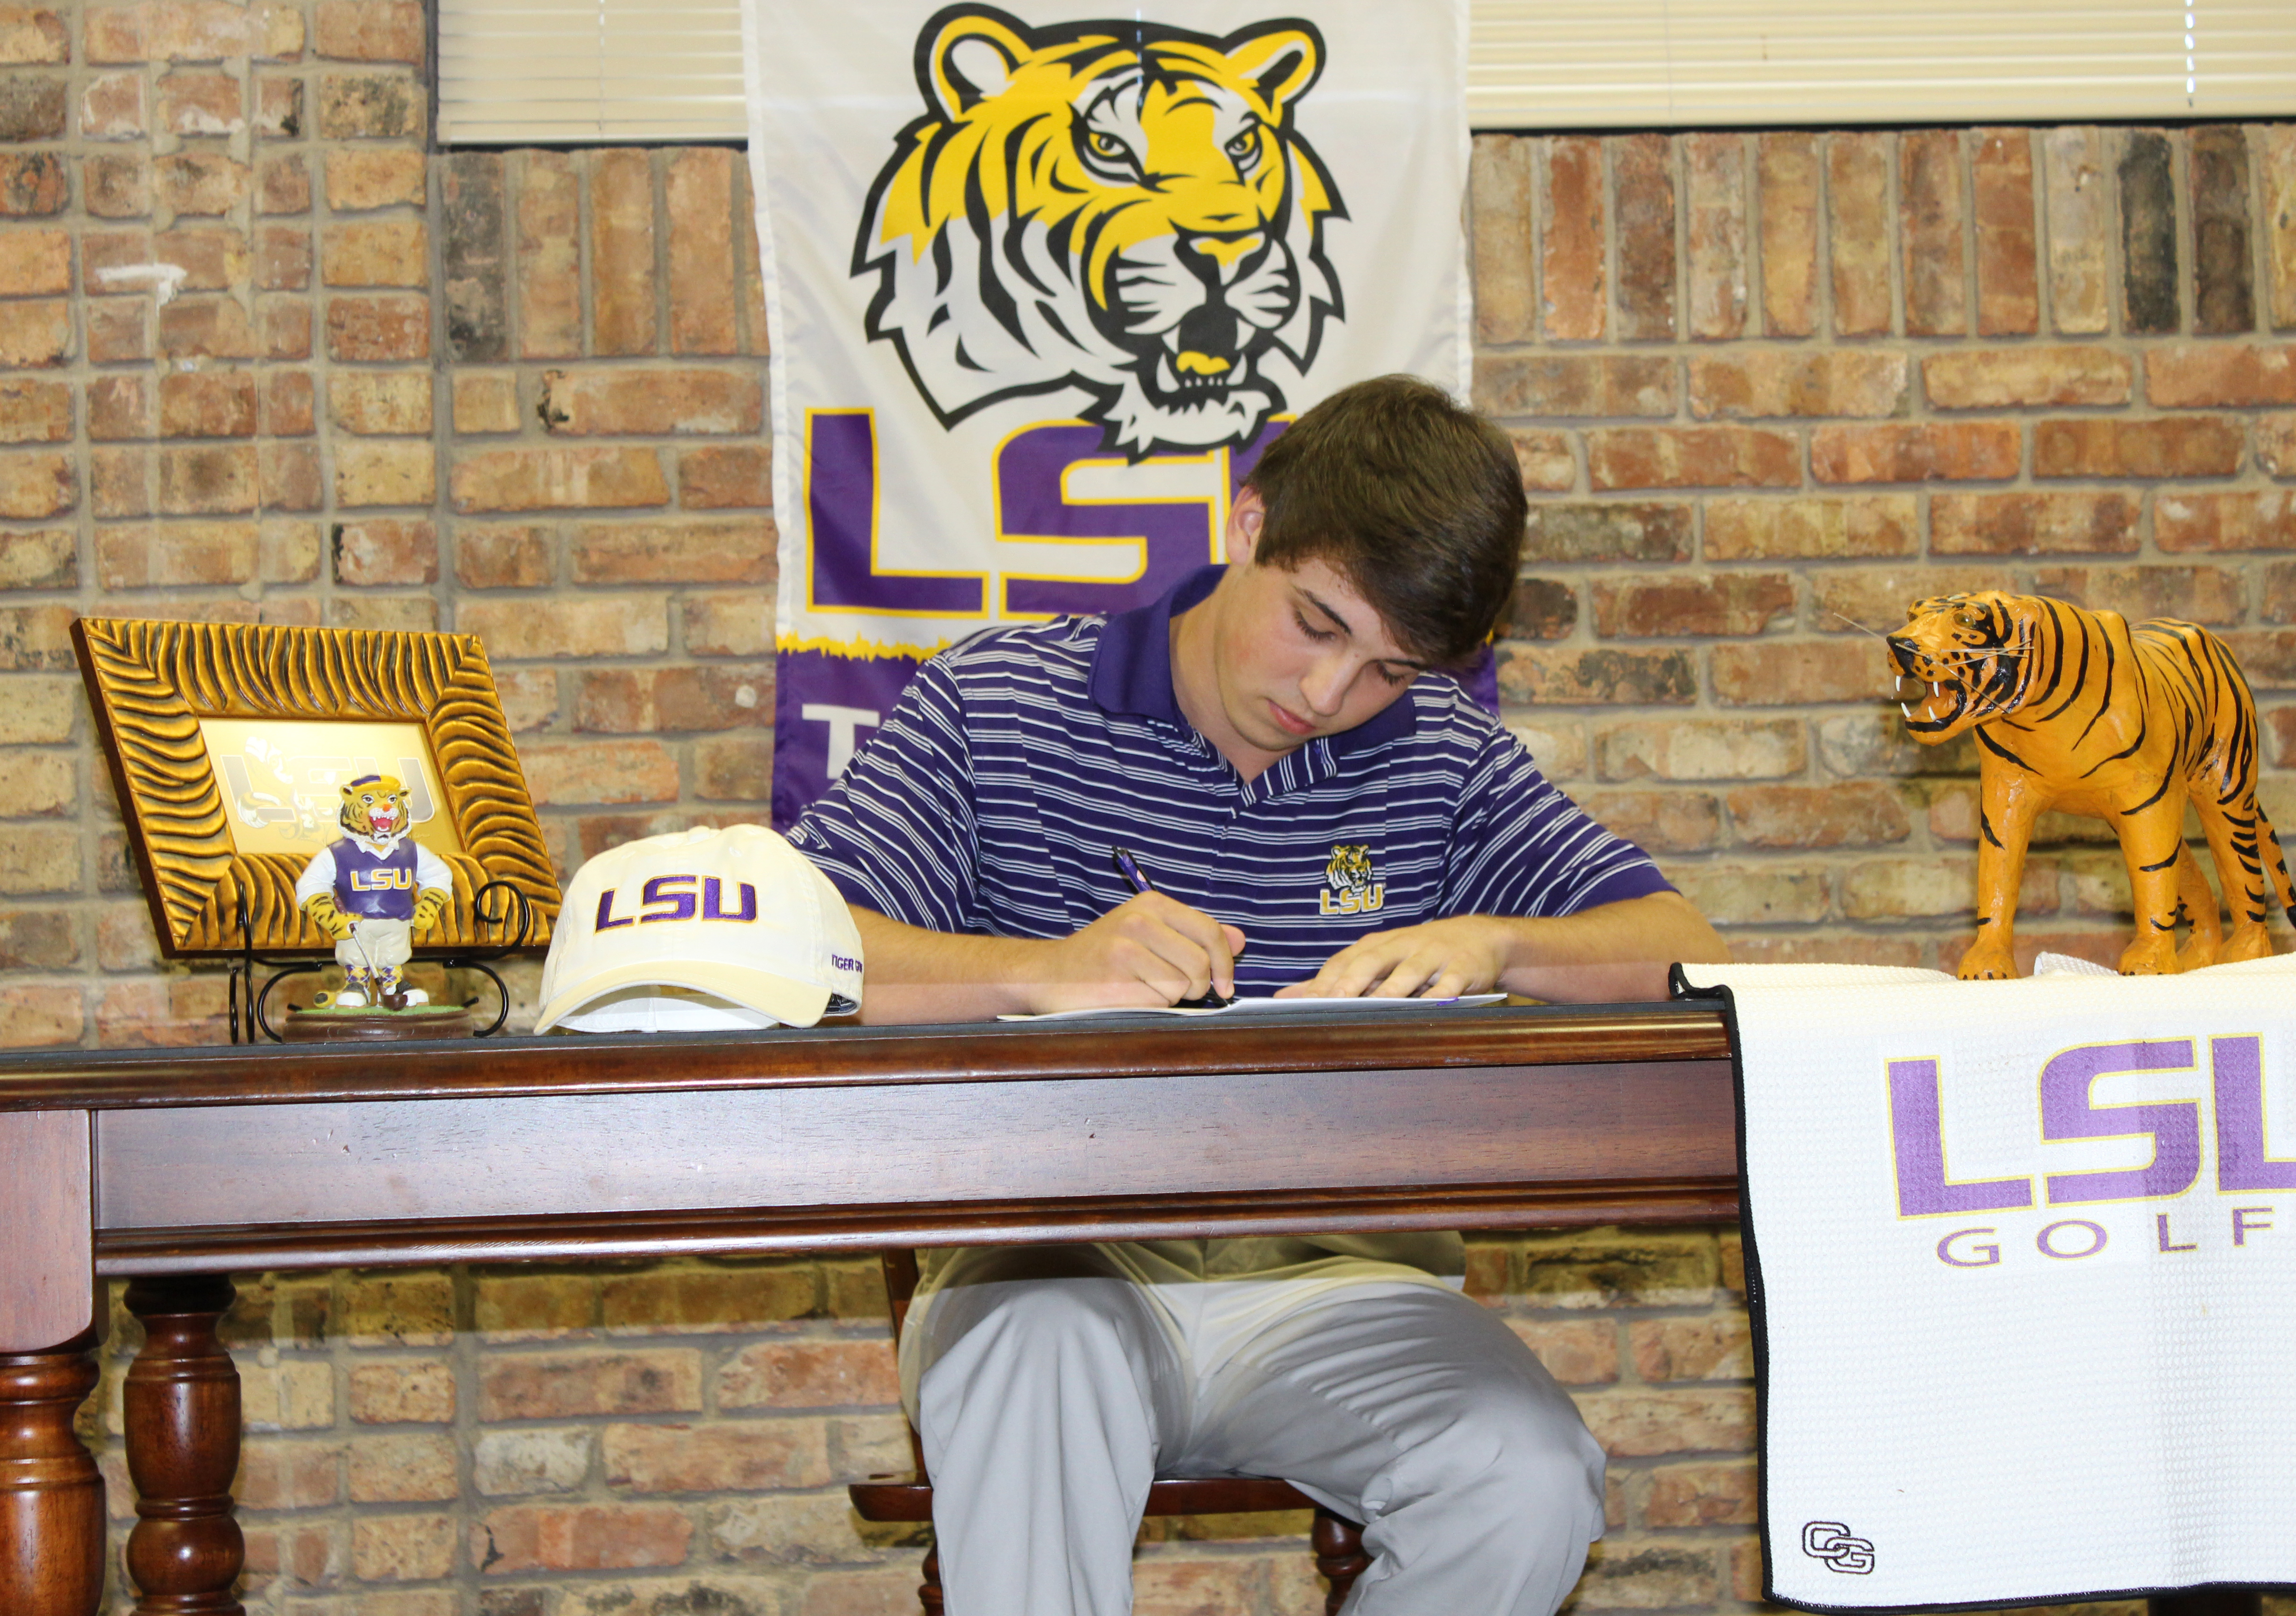 Eric Ricard signs with LSU